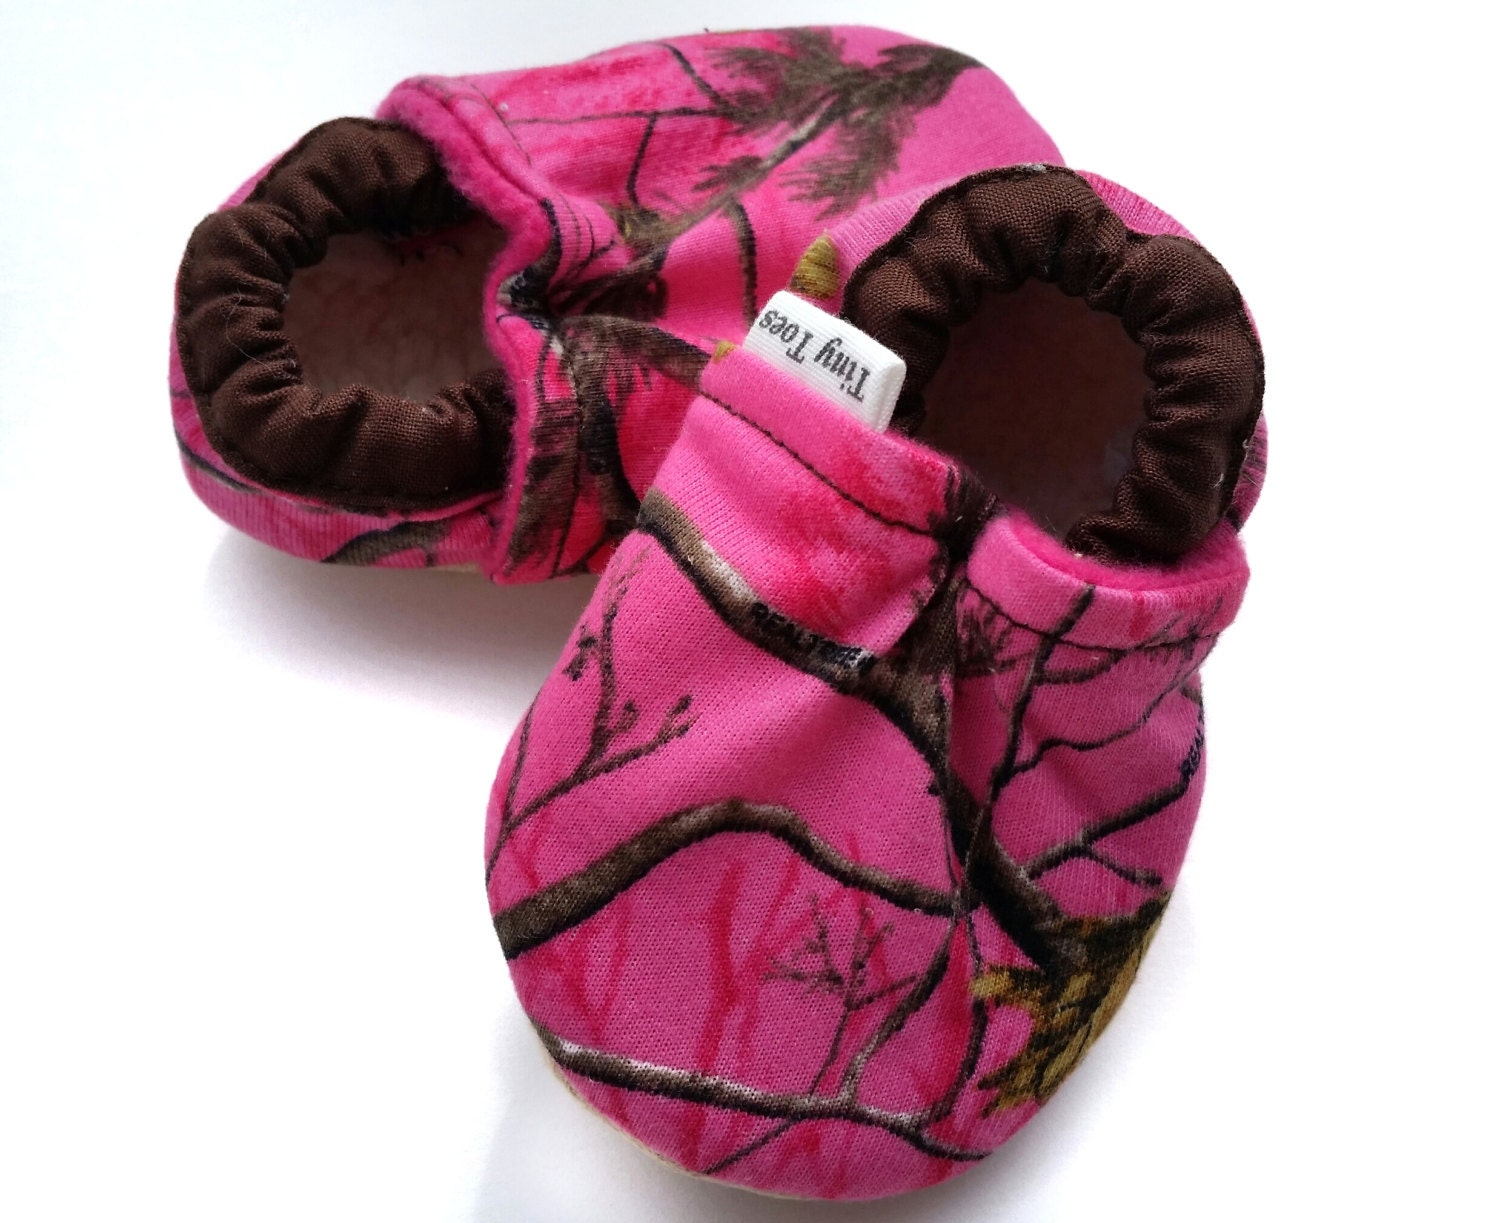 realtree pink camo baby shoes baby shoes soft sole